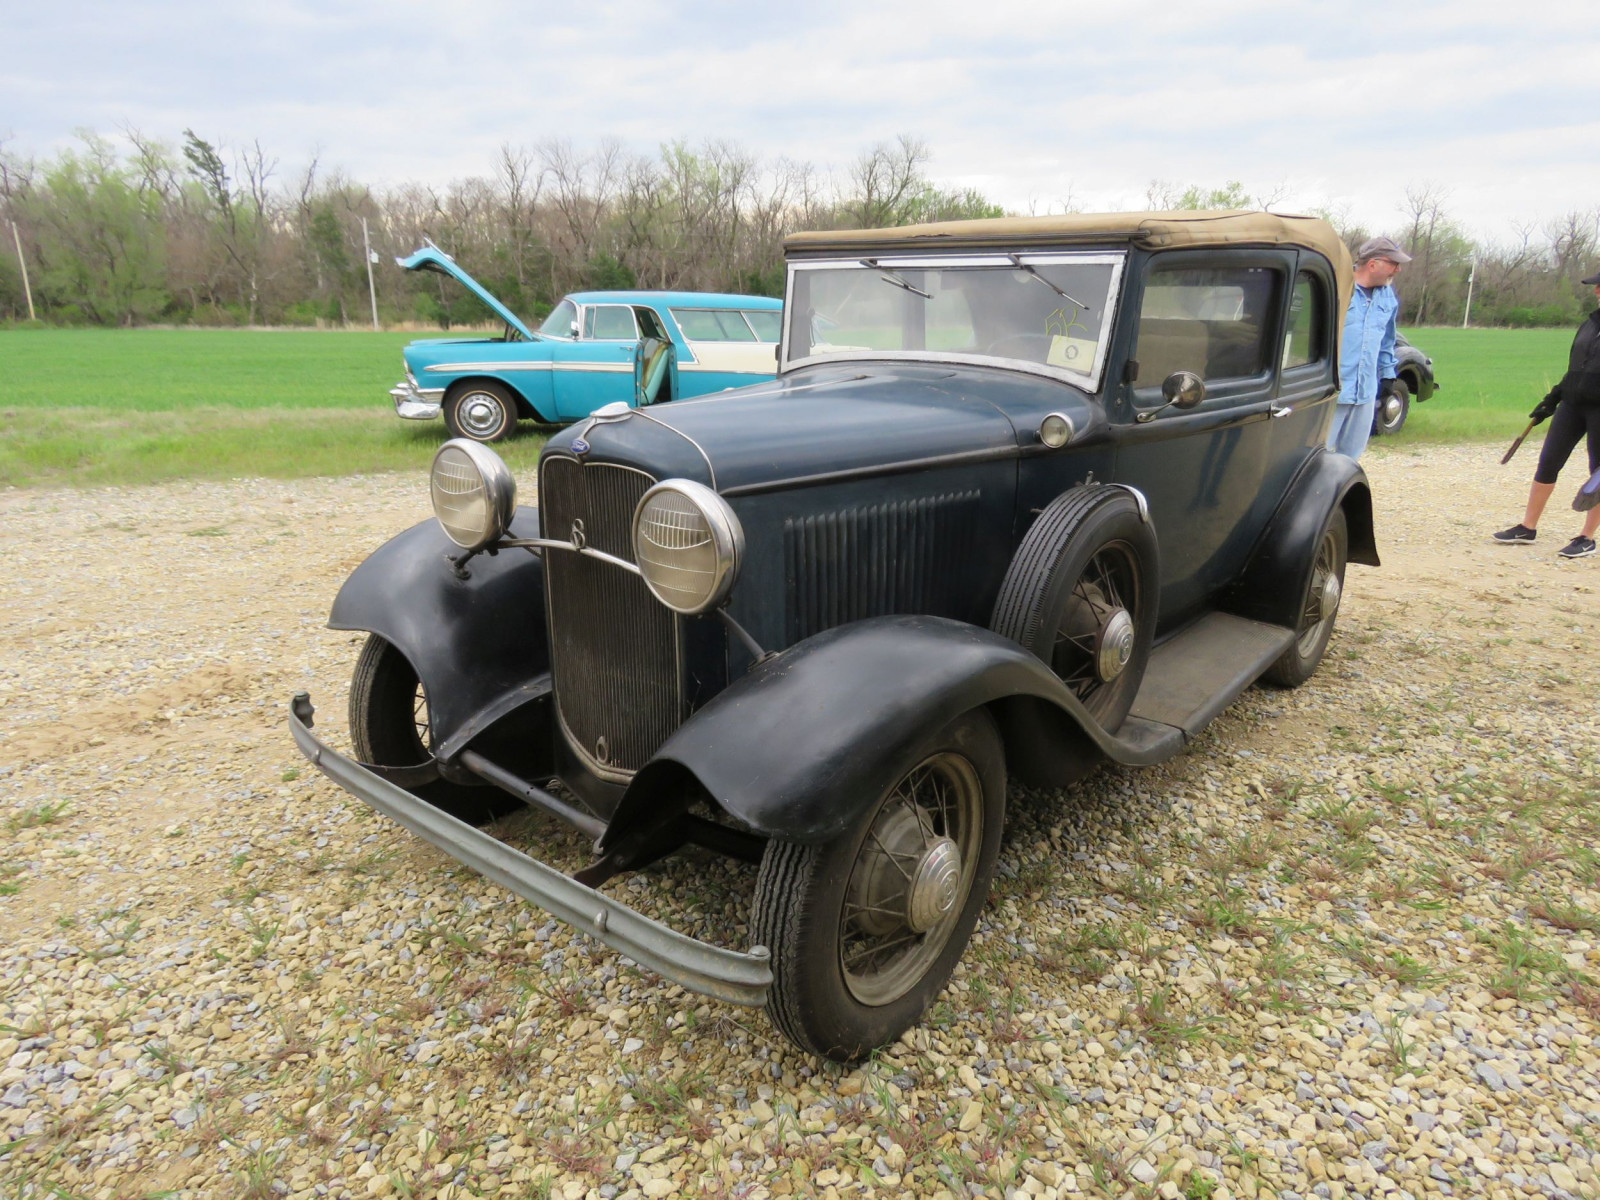 RARE 1932 FORD B400 2DR CONVERTIBLE V8 SEDAN - Image 11